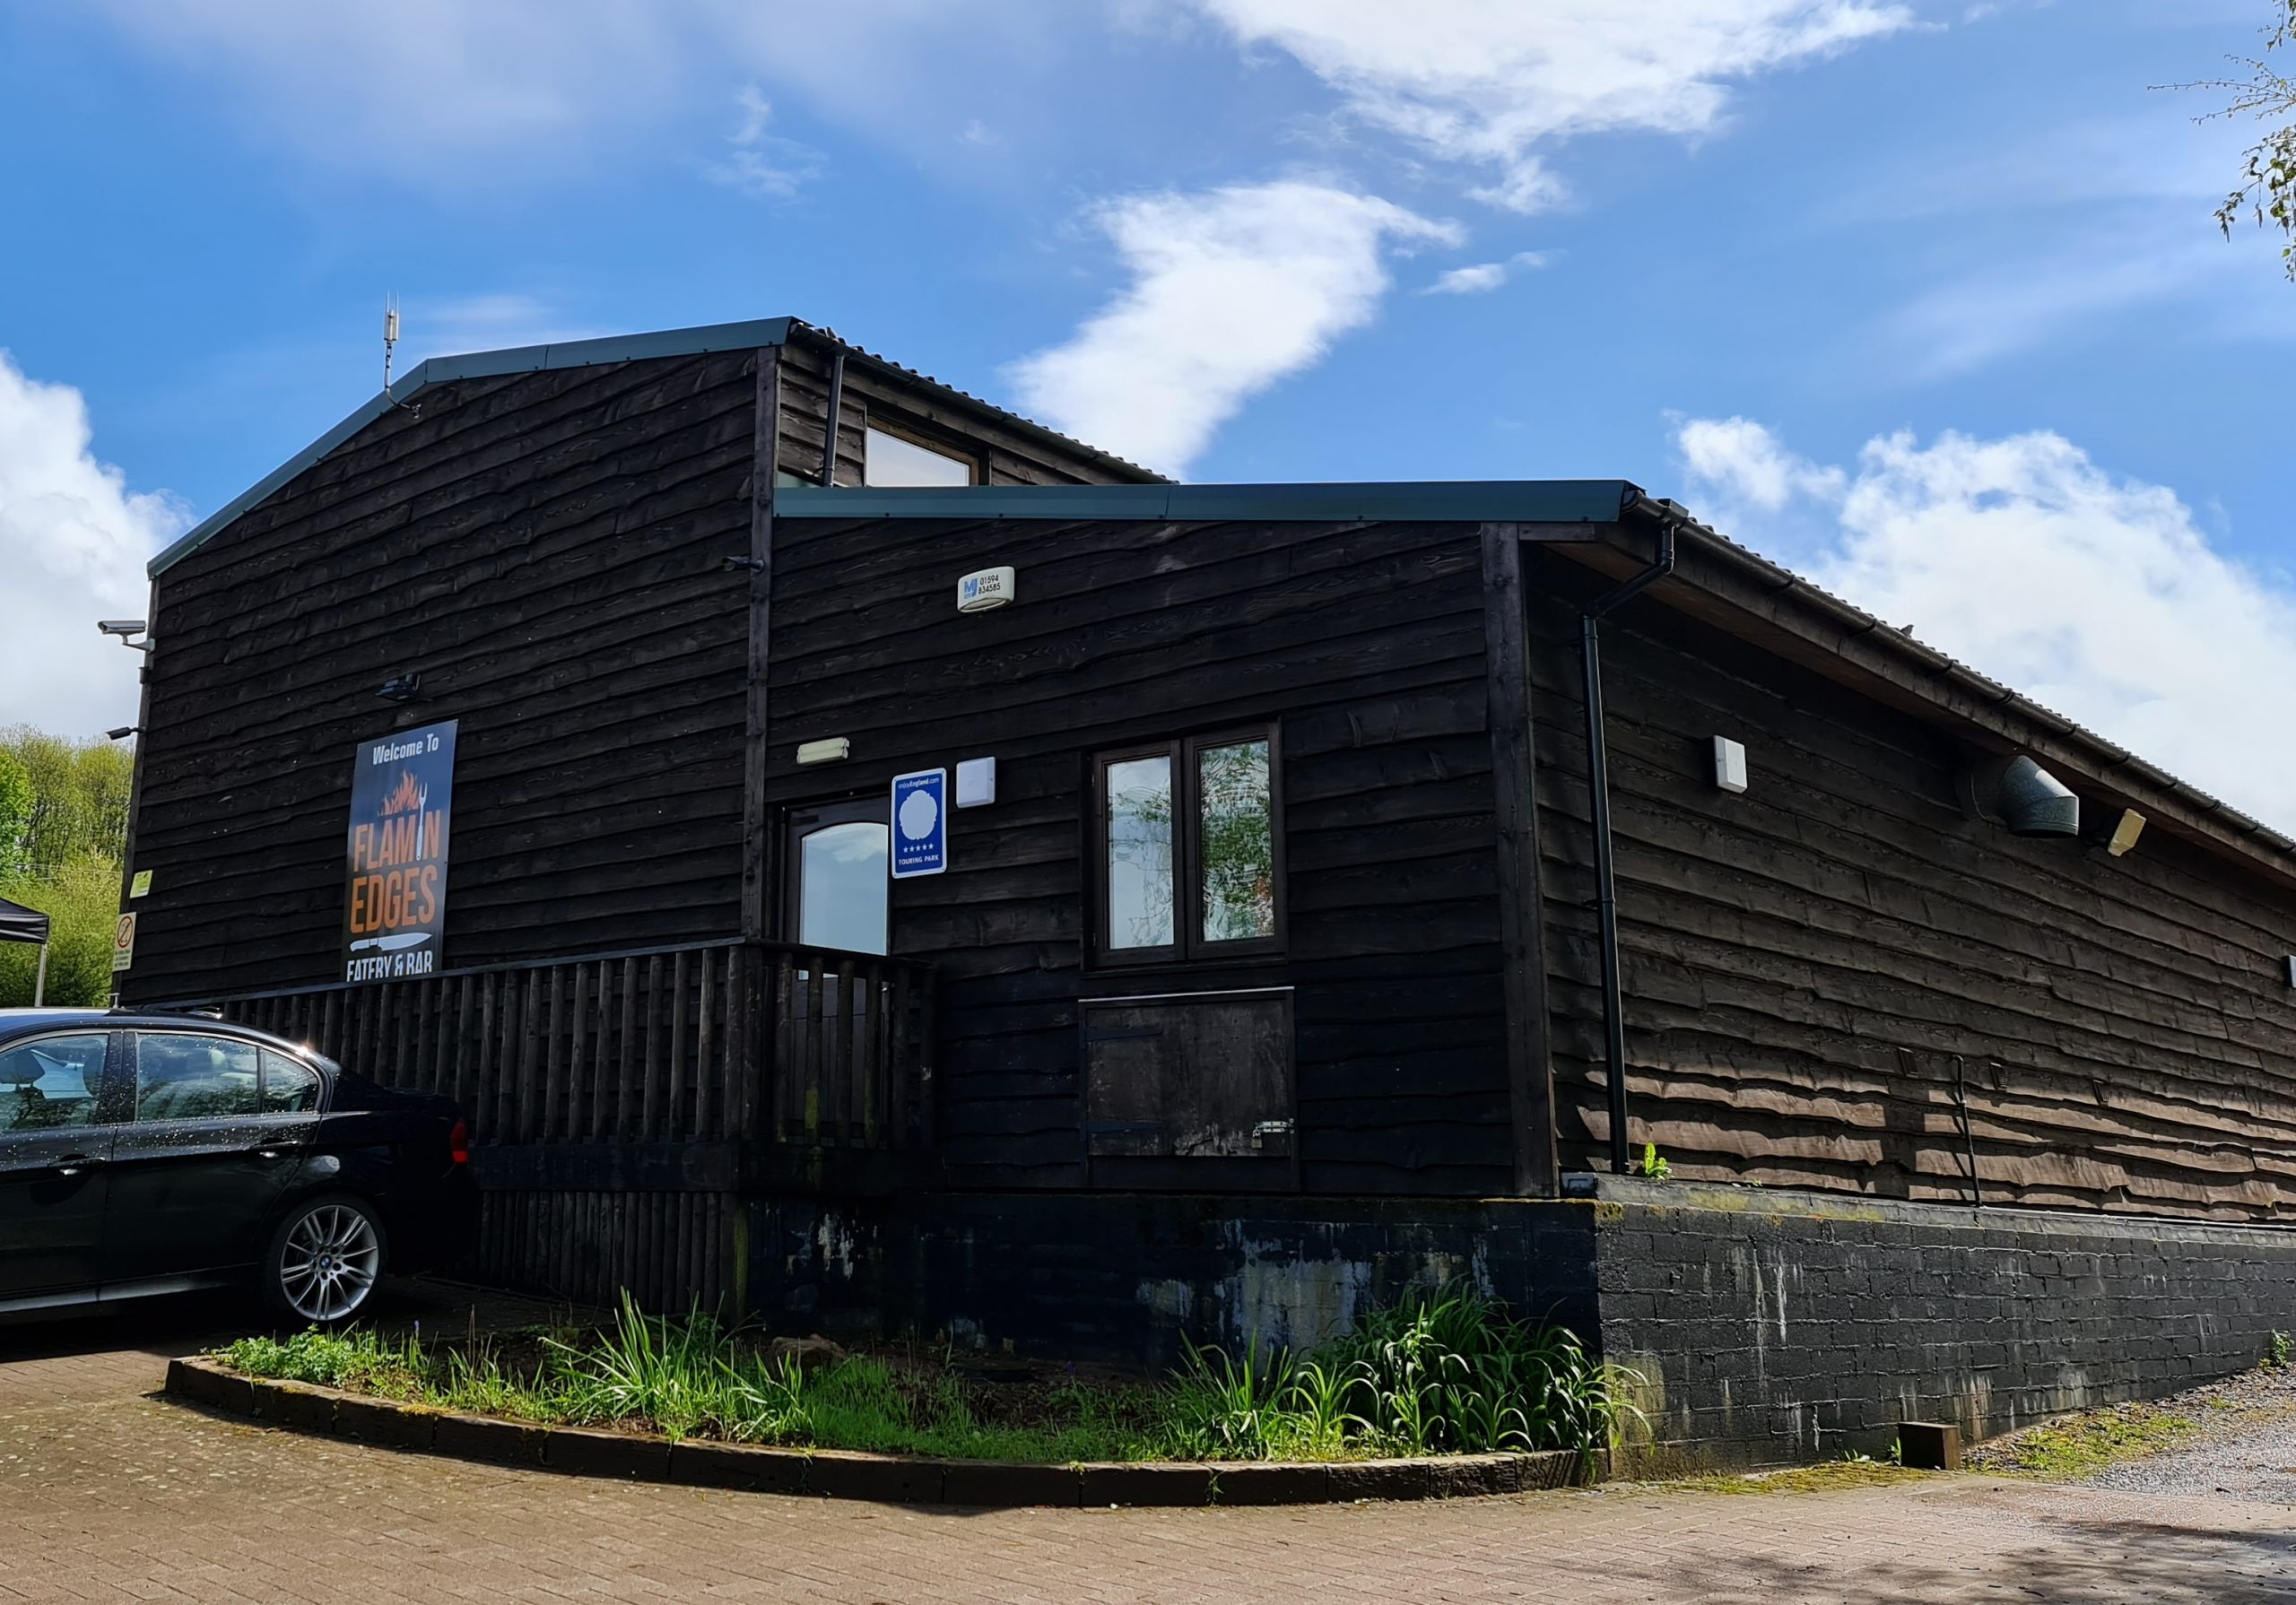 Flamin Edges Eatery and Bar Greenway campsite